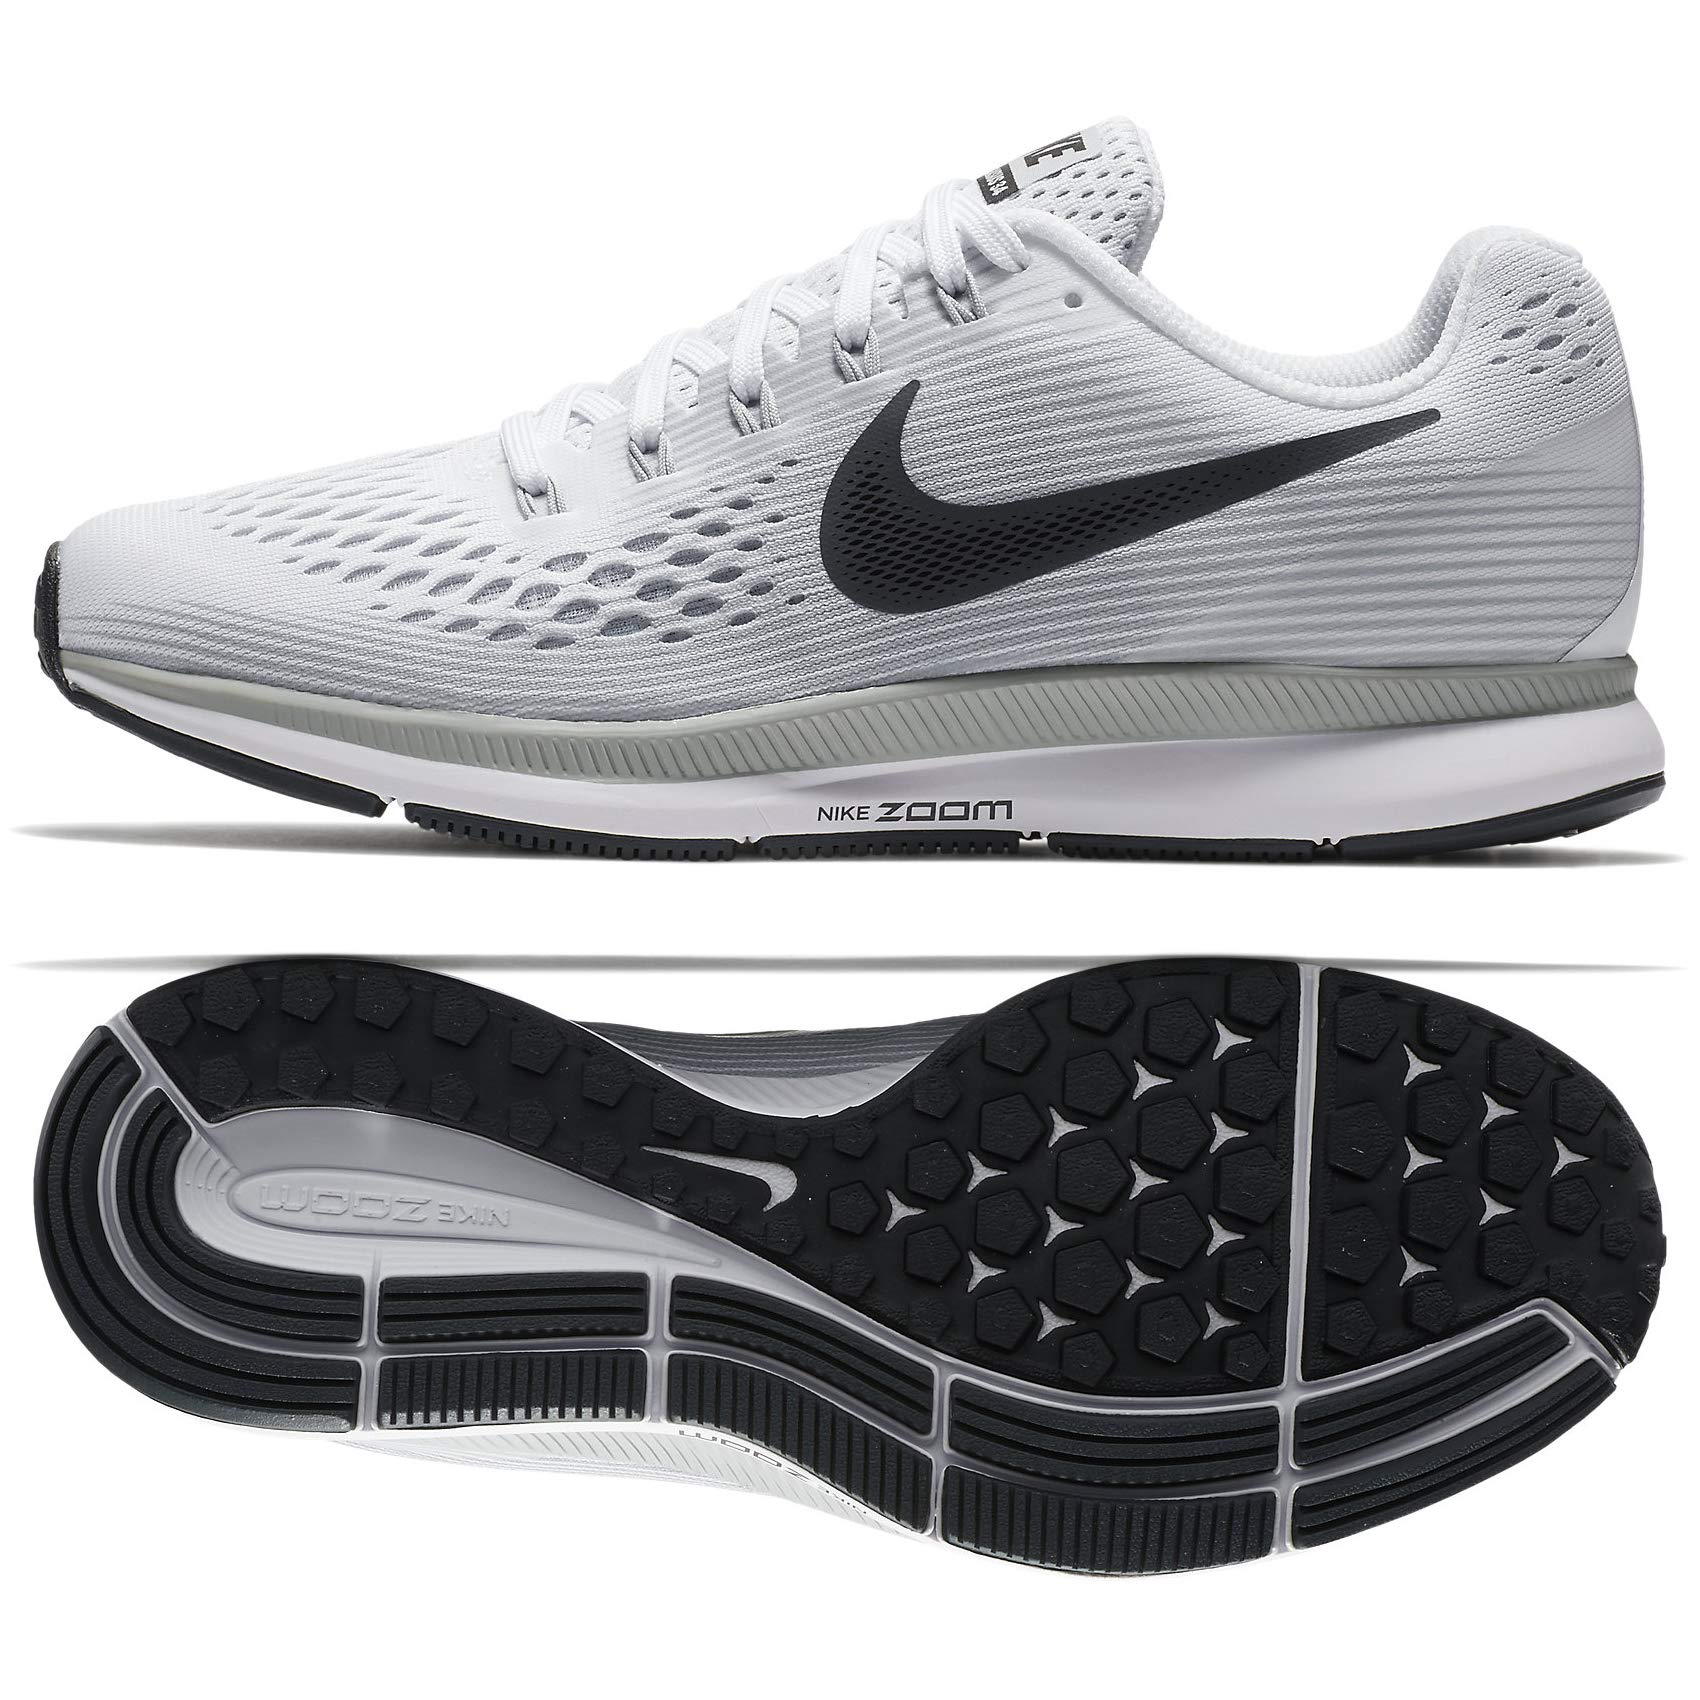 919b6156272b4 Nike Women's WMNS AIR Zoom Pegasus 34, White/Anthracite-Pure Platinum, Size  8